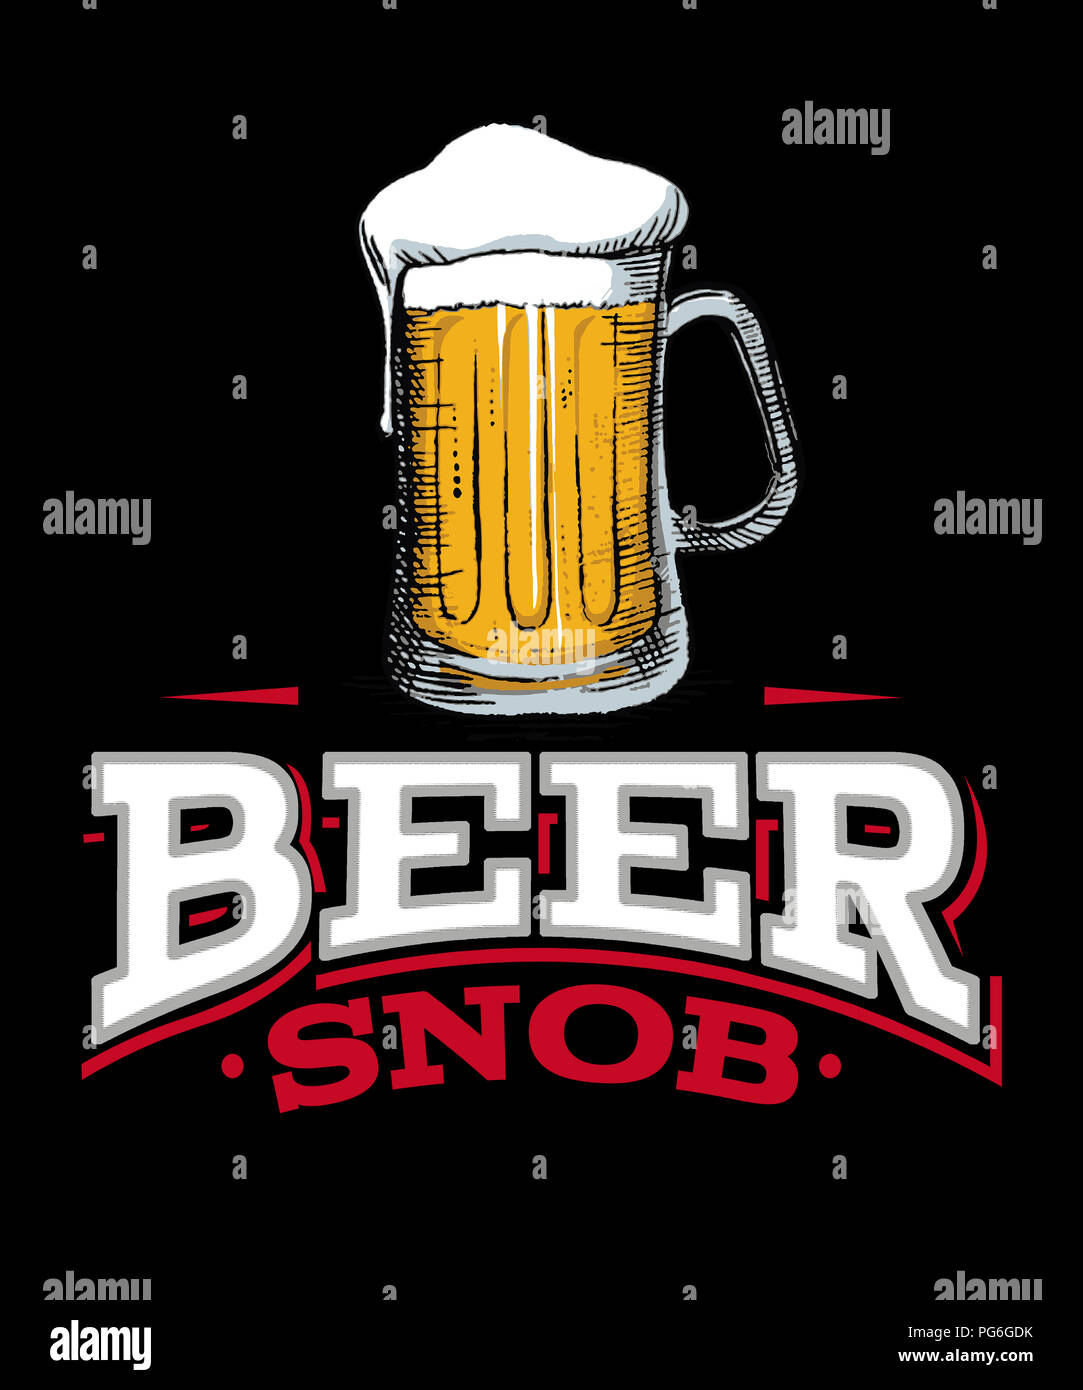 Beer snob illustration graphic of word art of a tall mug of beer on a black background.  Makes great wall art. - Stock Image